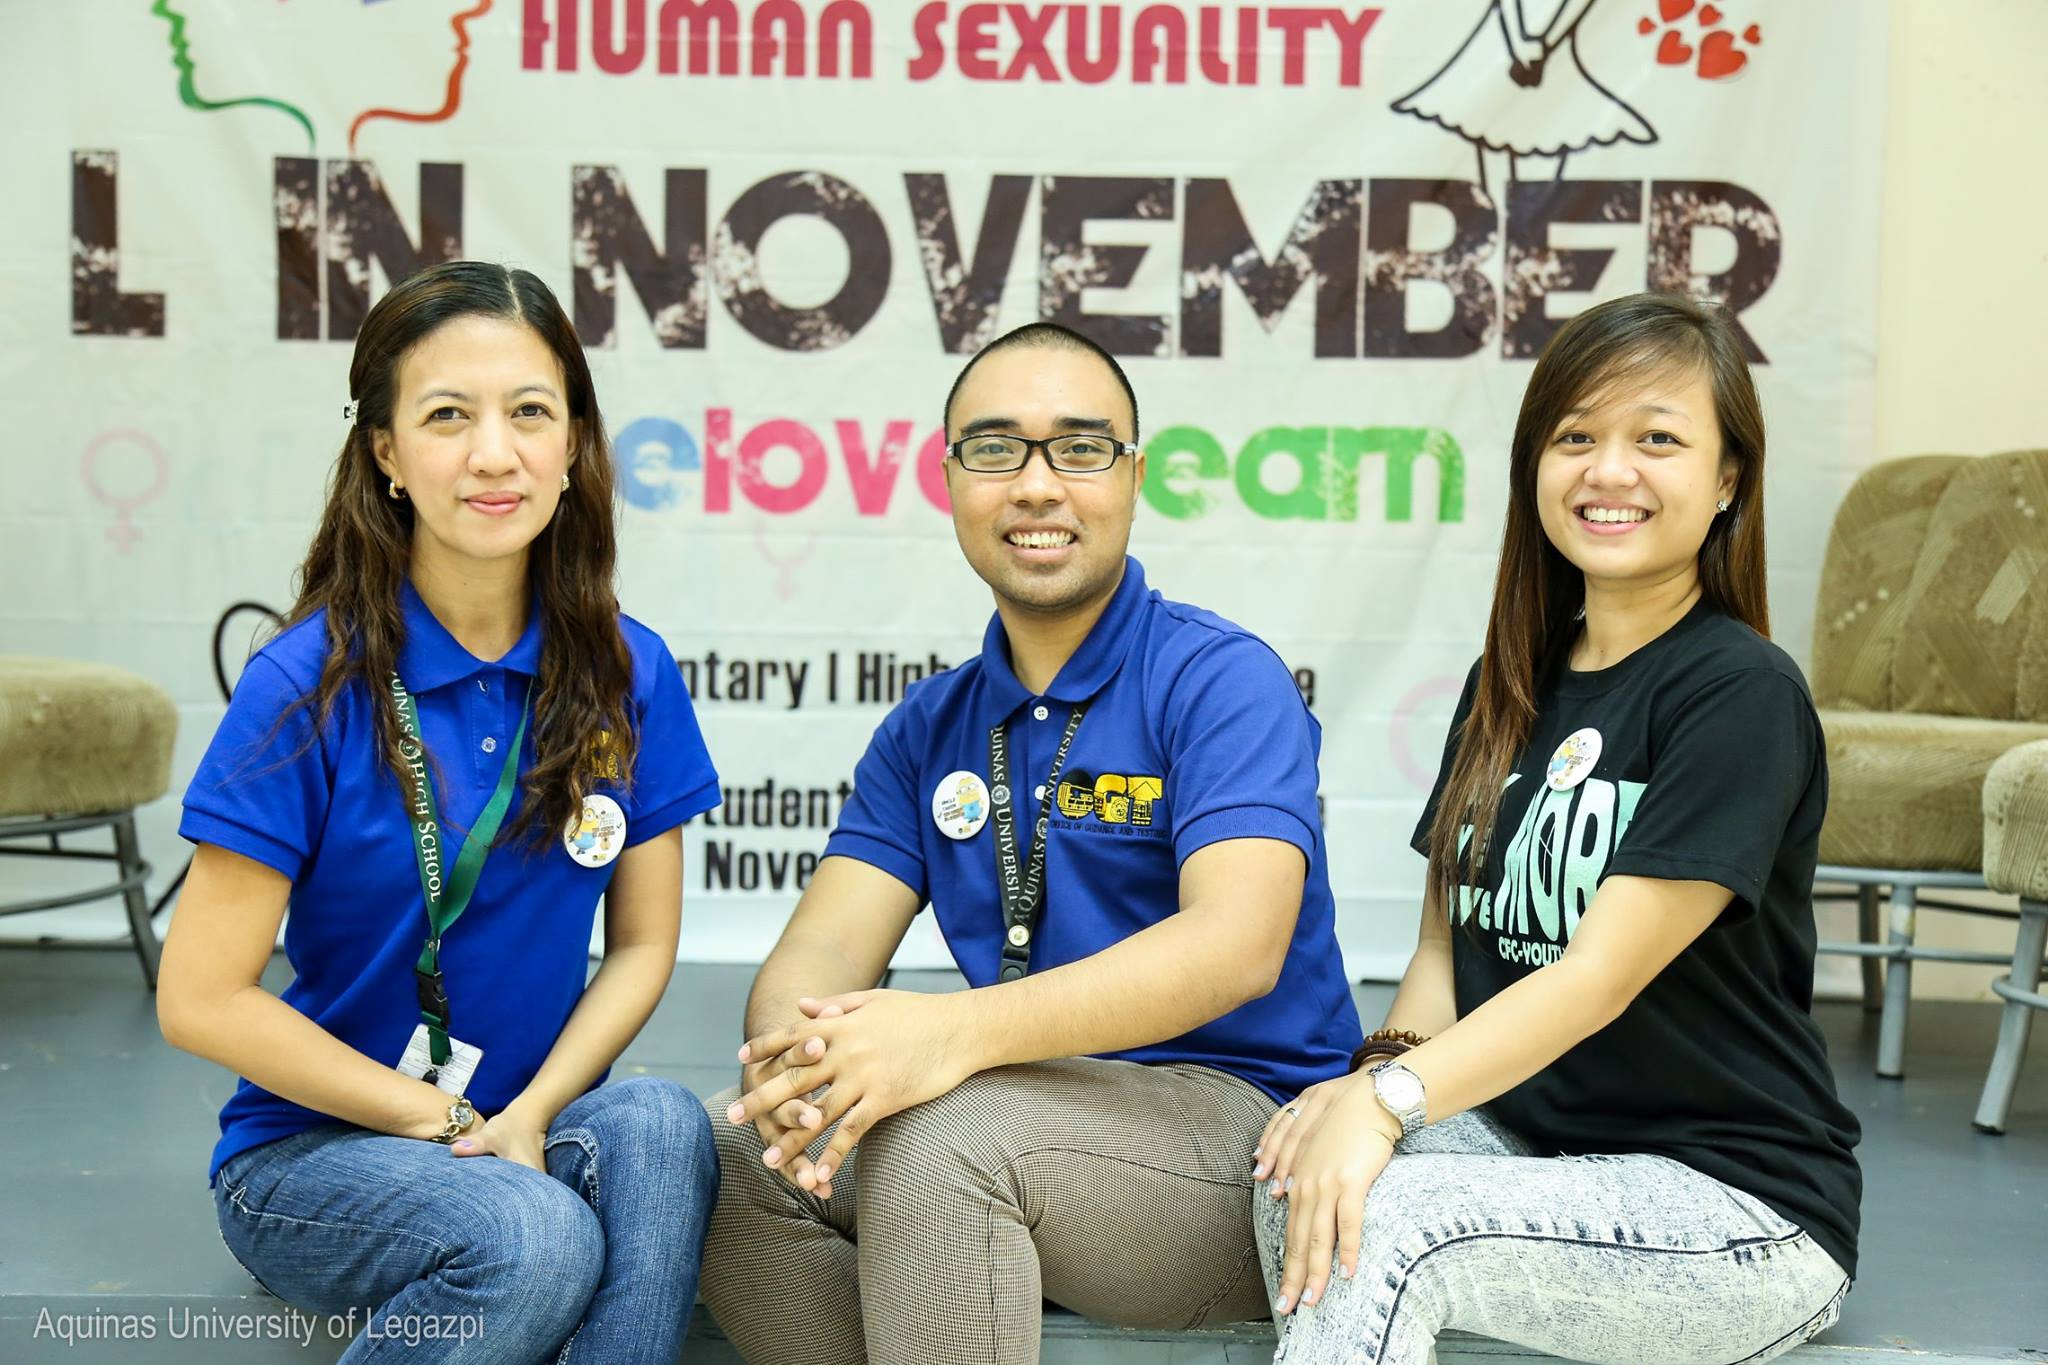 L in November: Seminar on Human Sexuality